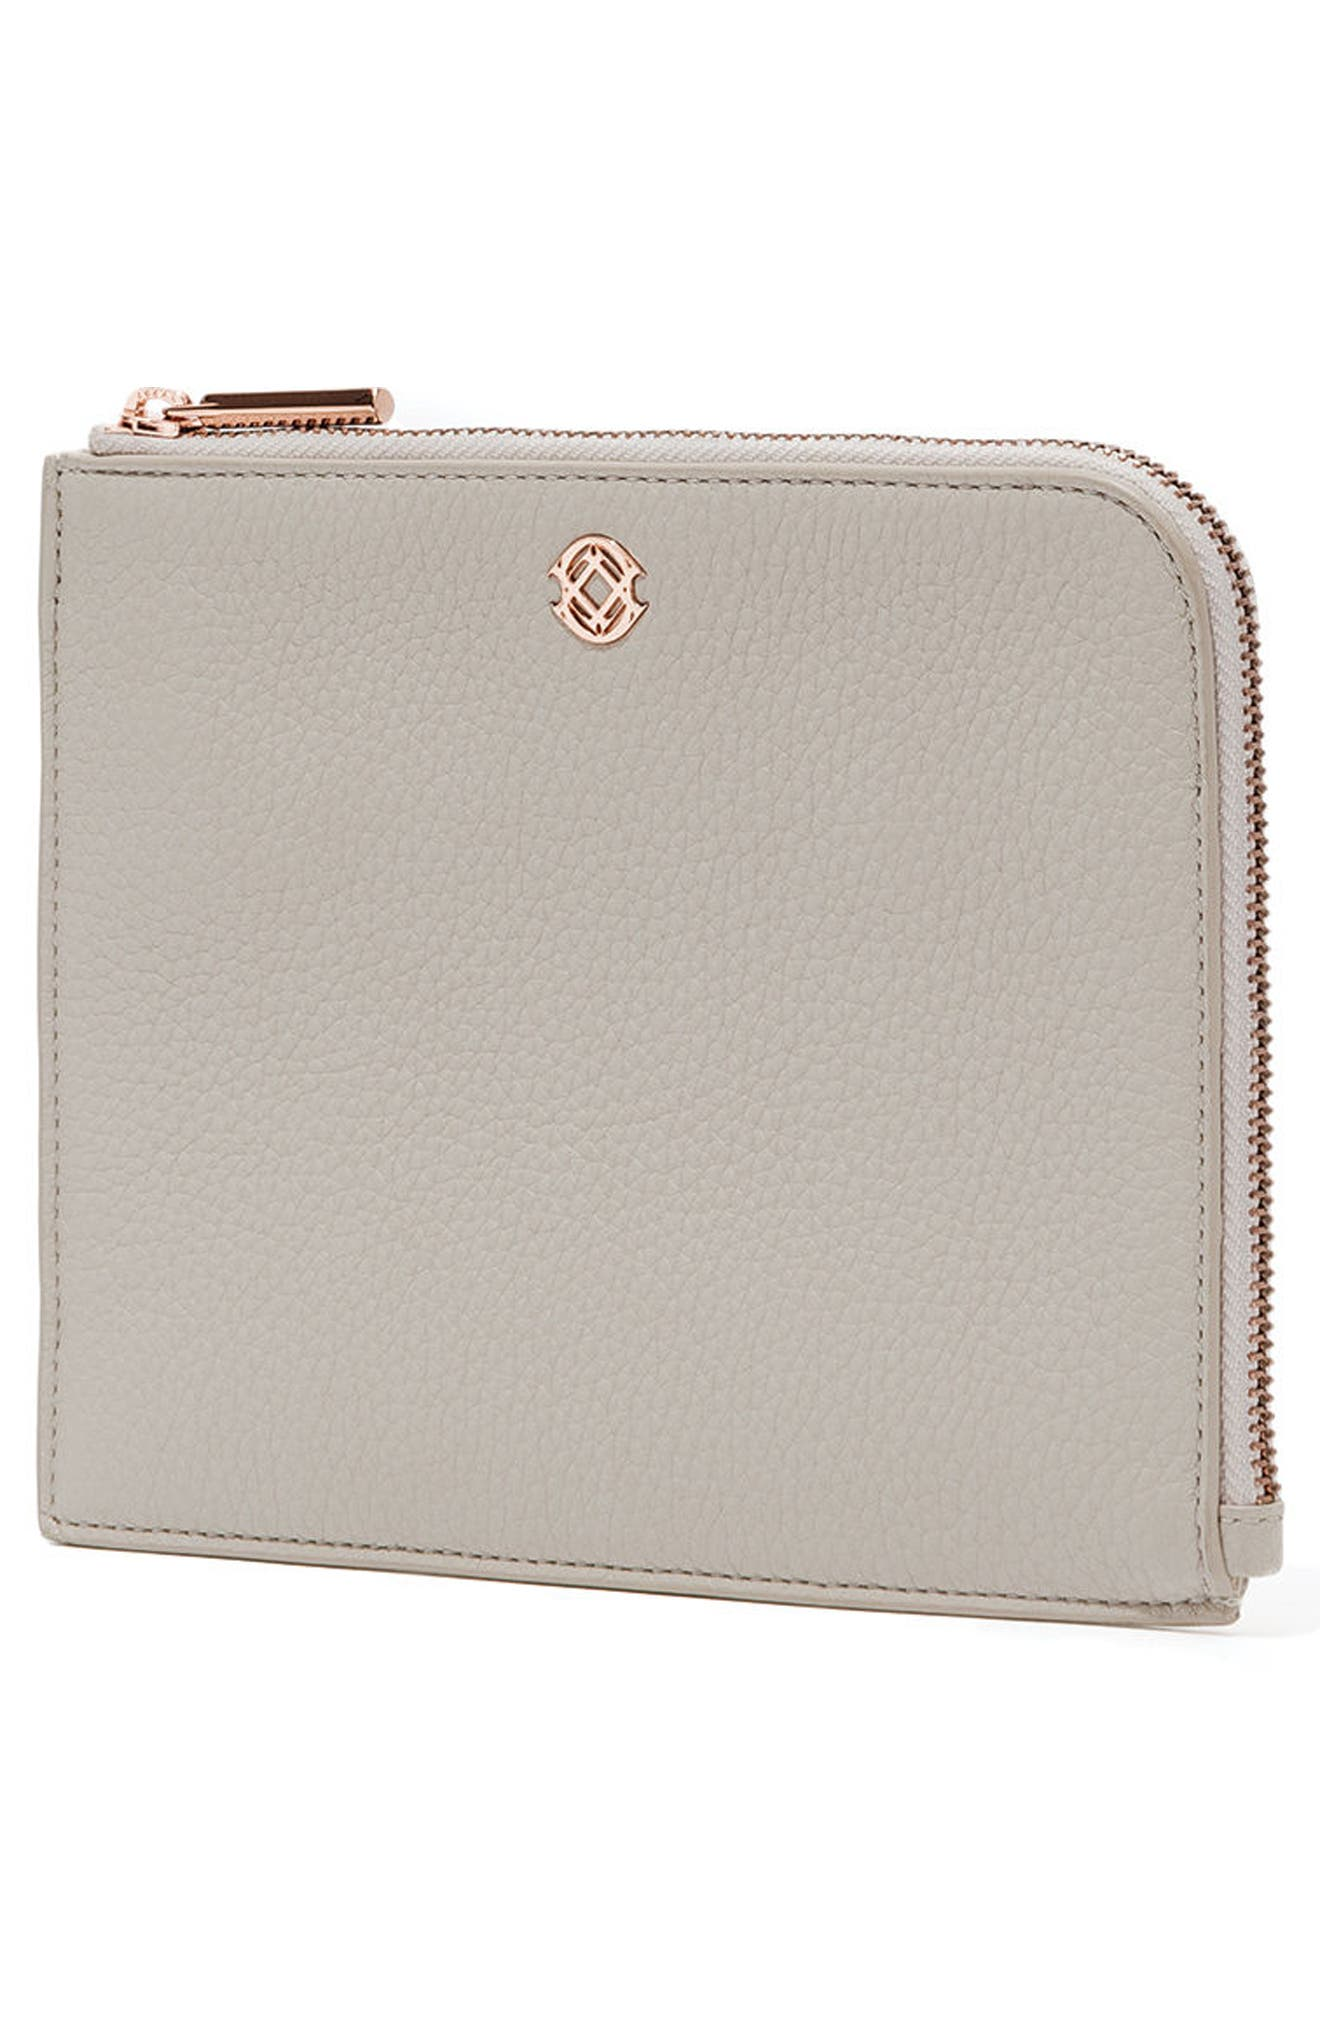 Small Elle Leather Clutch,                             Alternate thumbnail 25, color,